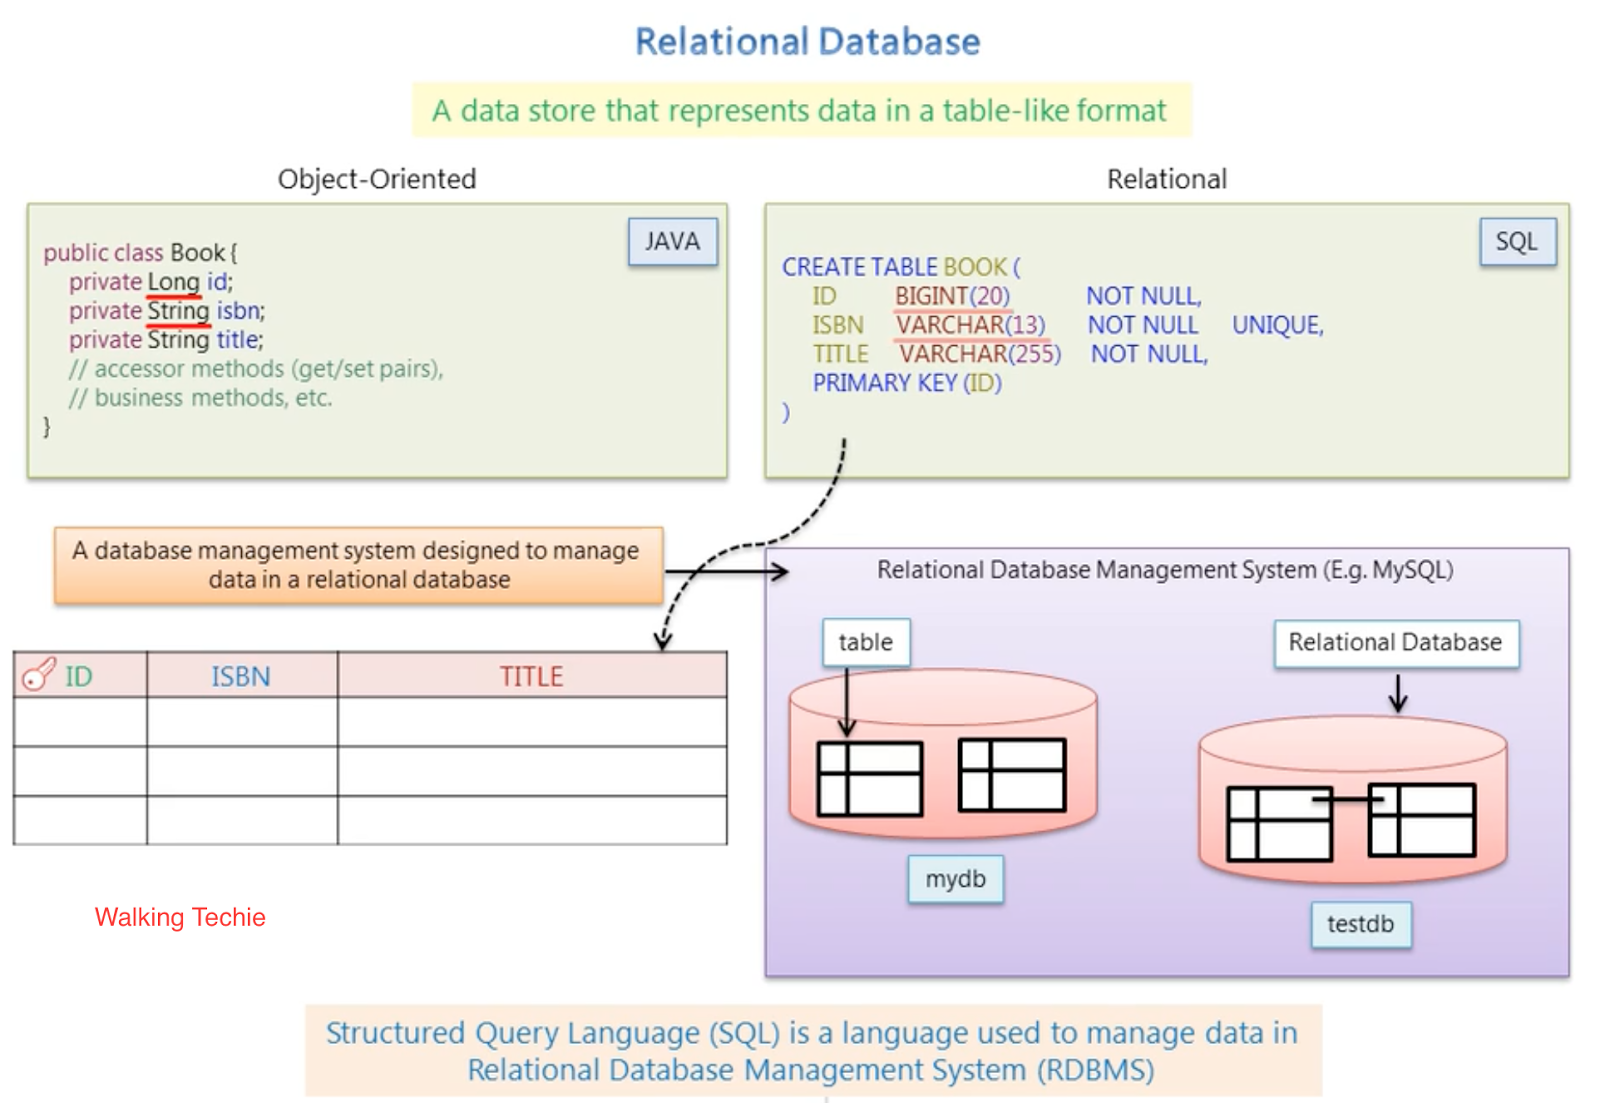 Walking techie relational database relational database management system object model data mapping with relational model data ccuart Images